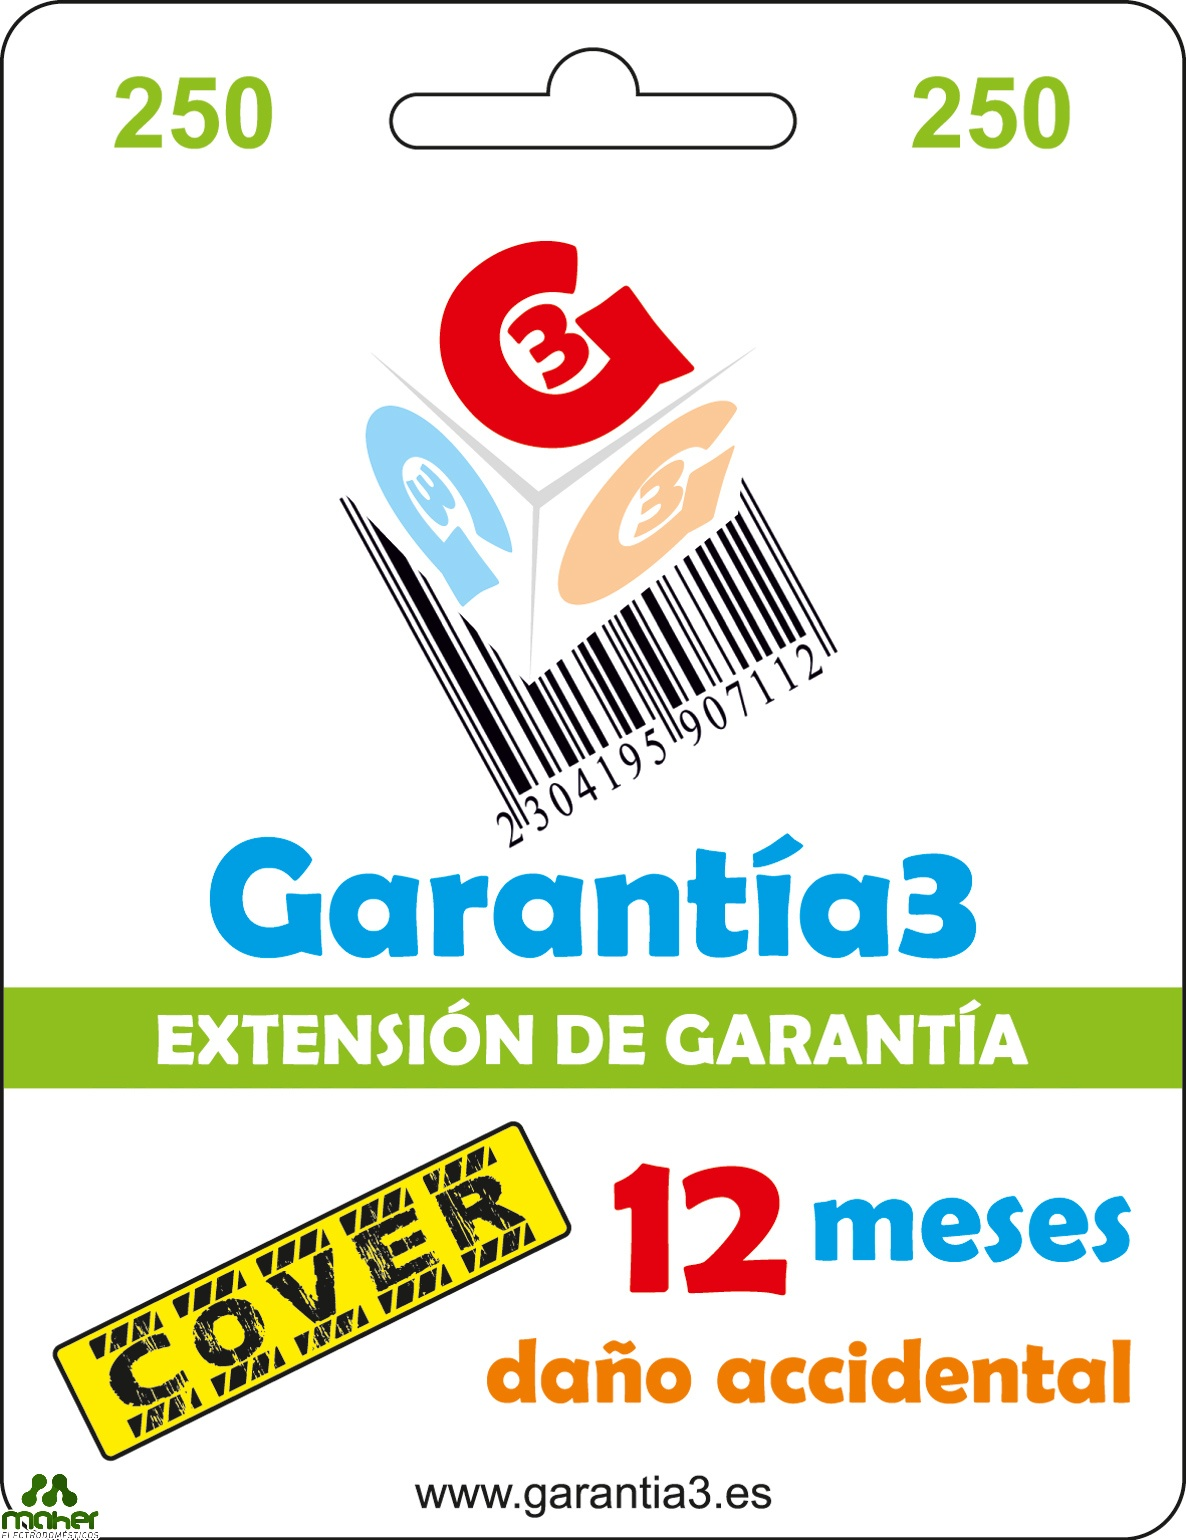 EXTENSION GARANTIA 12 MESES PARA DAÑO ACCIDENTAL 250€